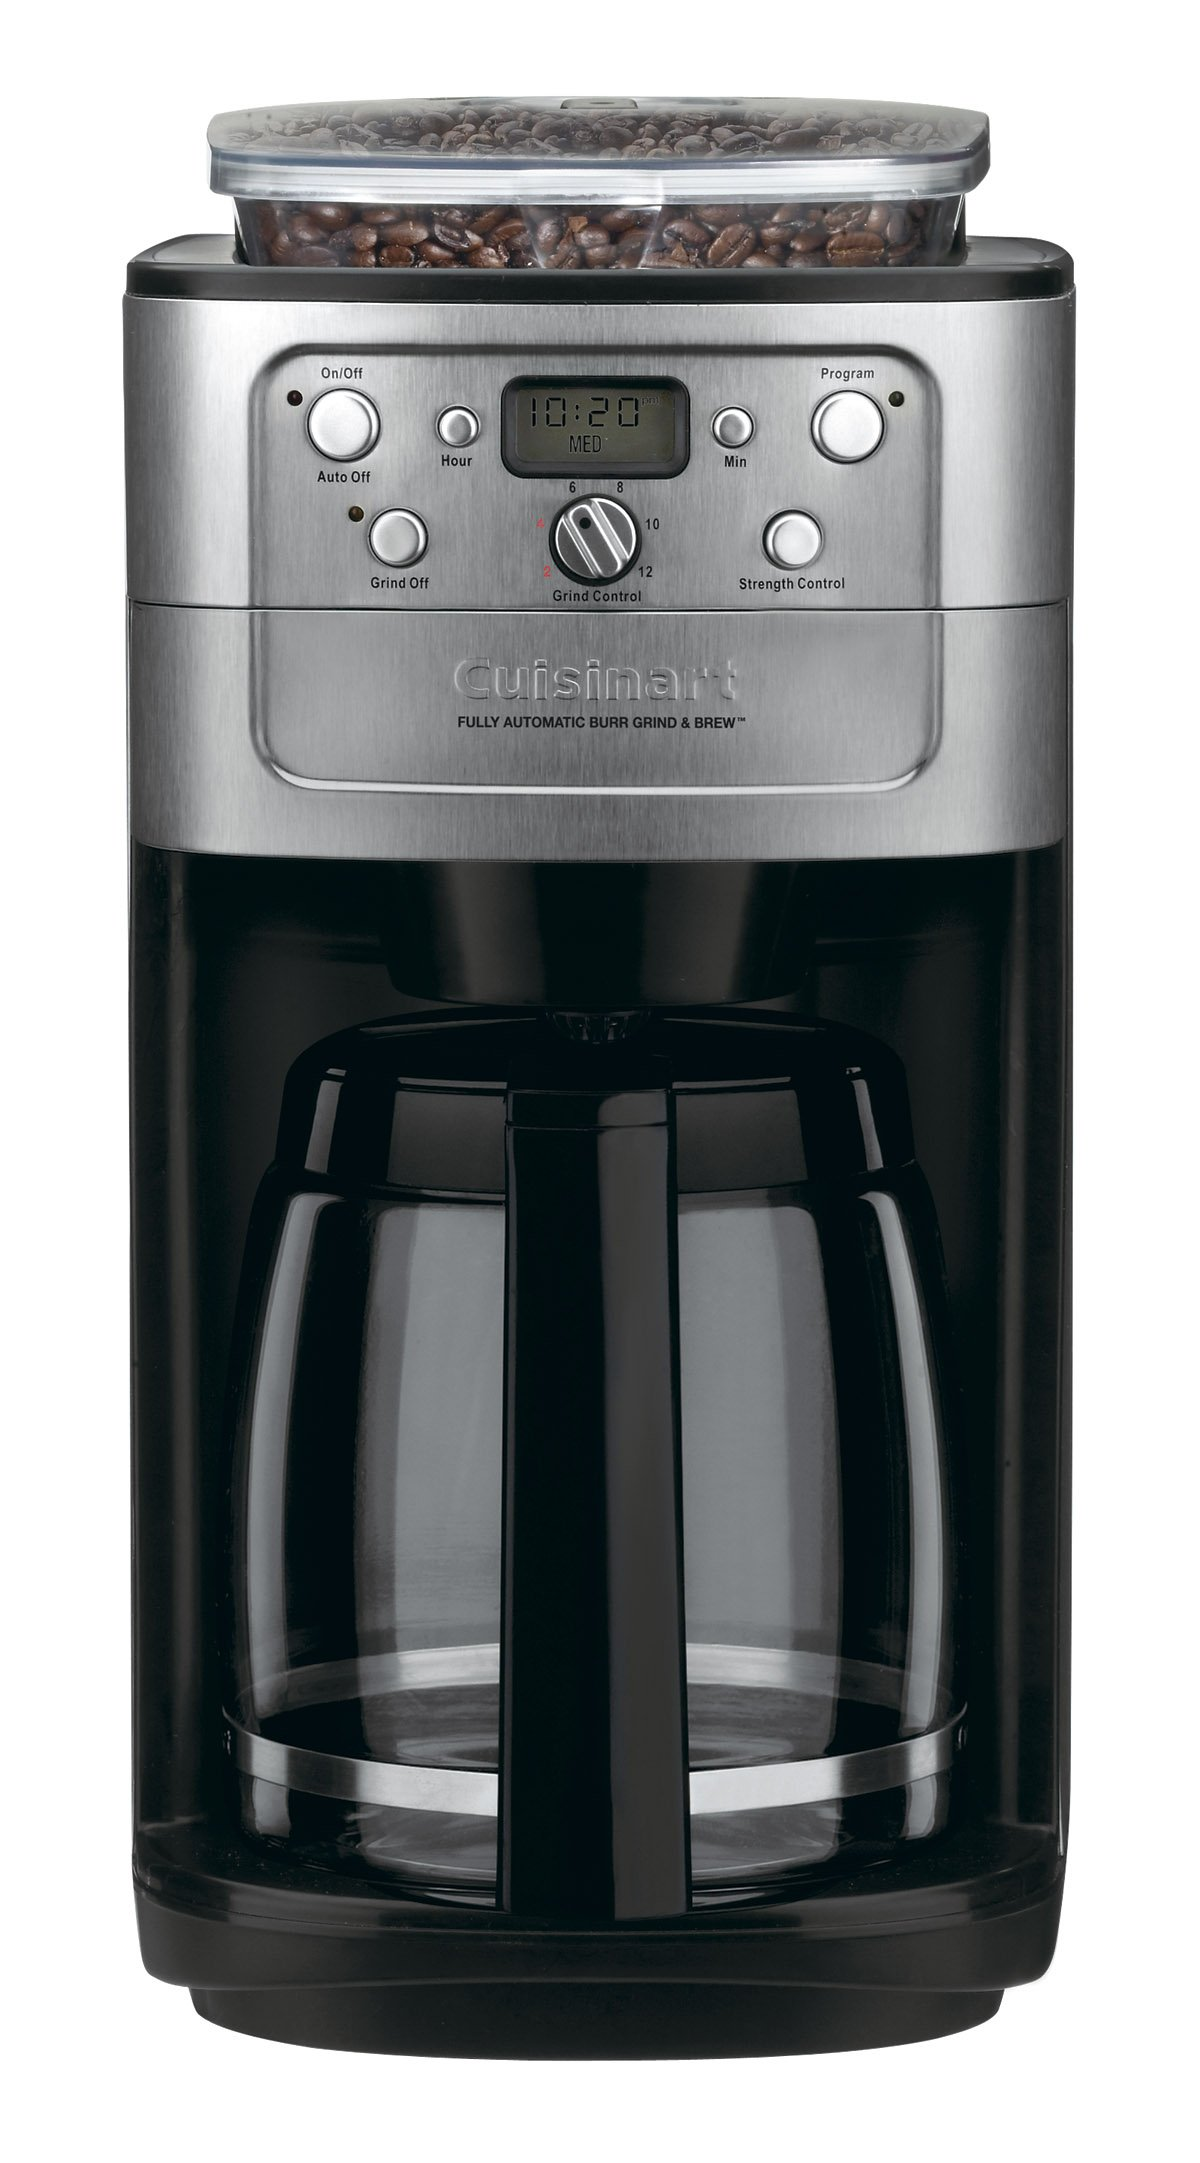 Conair Cuisinart Grind & Brew DGB-700BC 12 Cup Coffeemaker (Black/Brushed Chrome) by Cuisinart (Image #6)